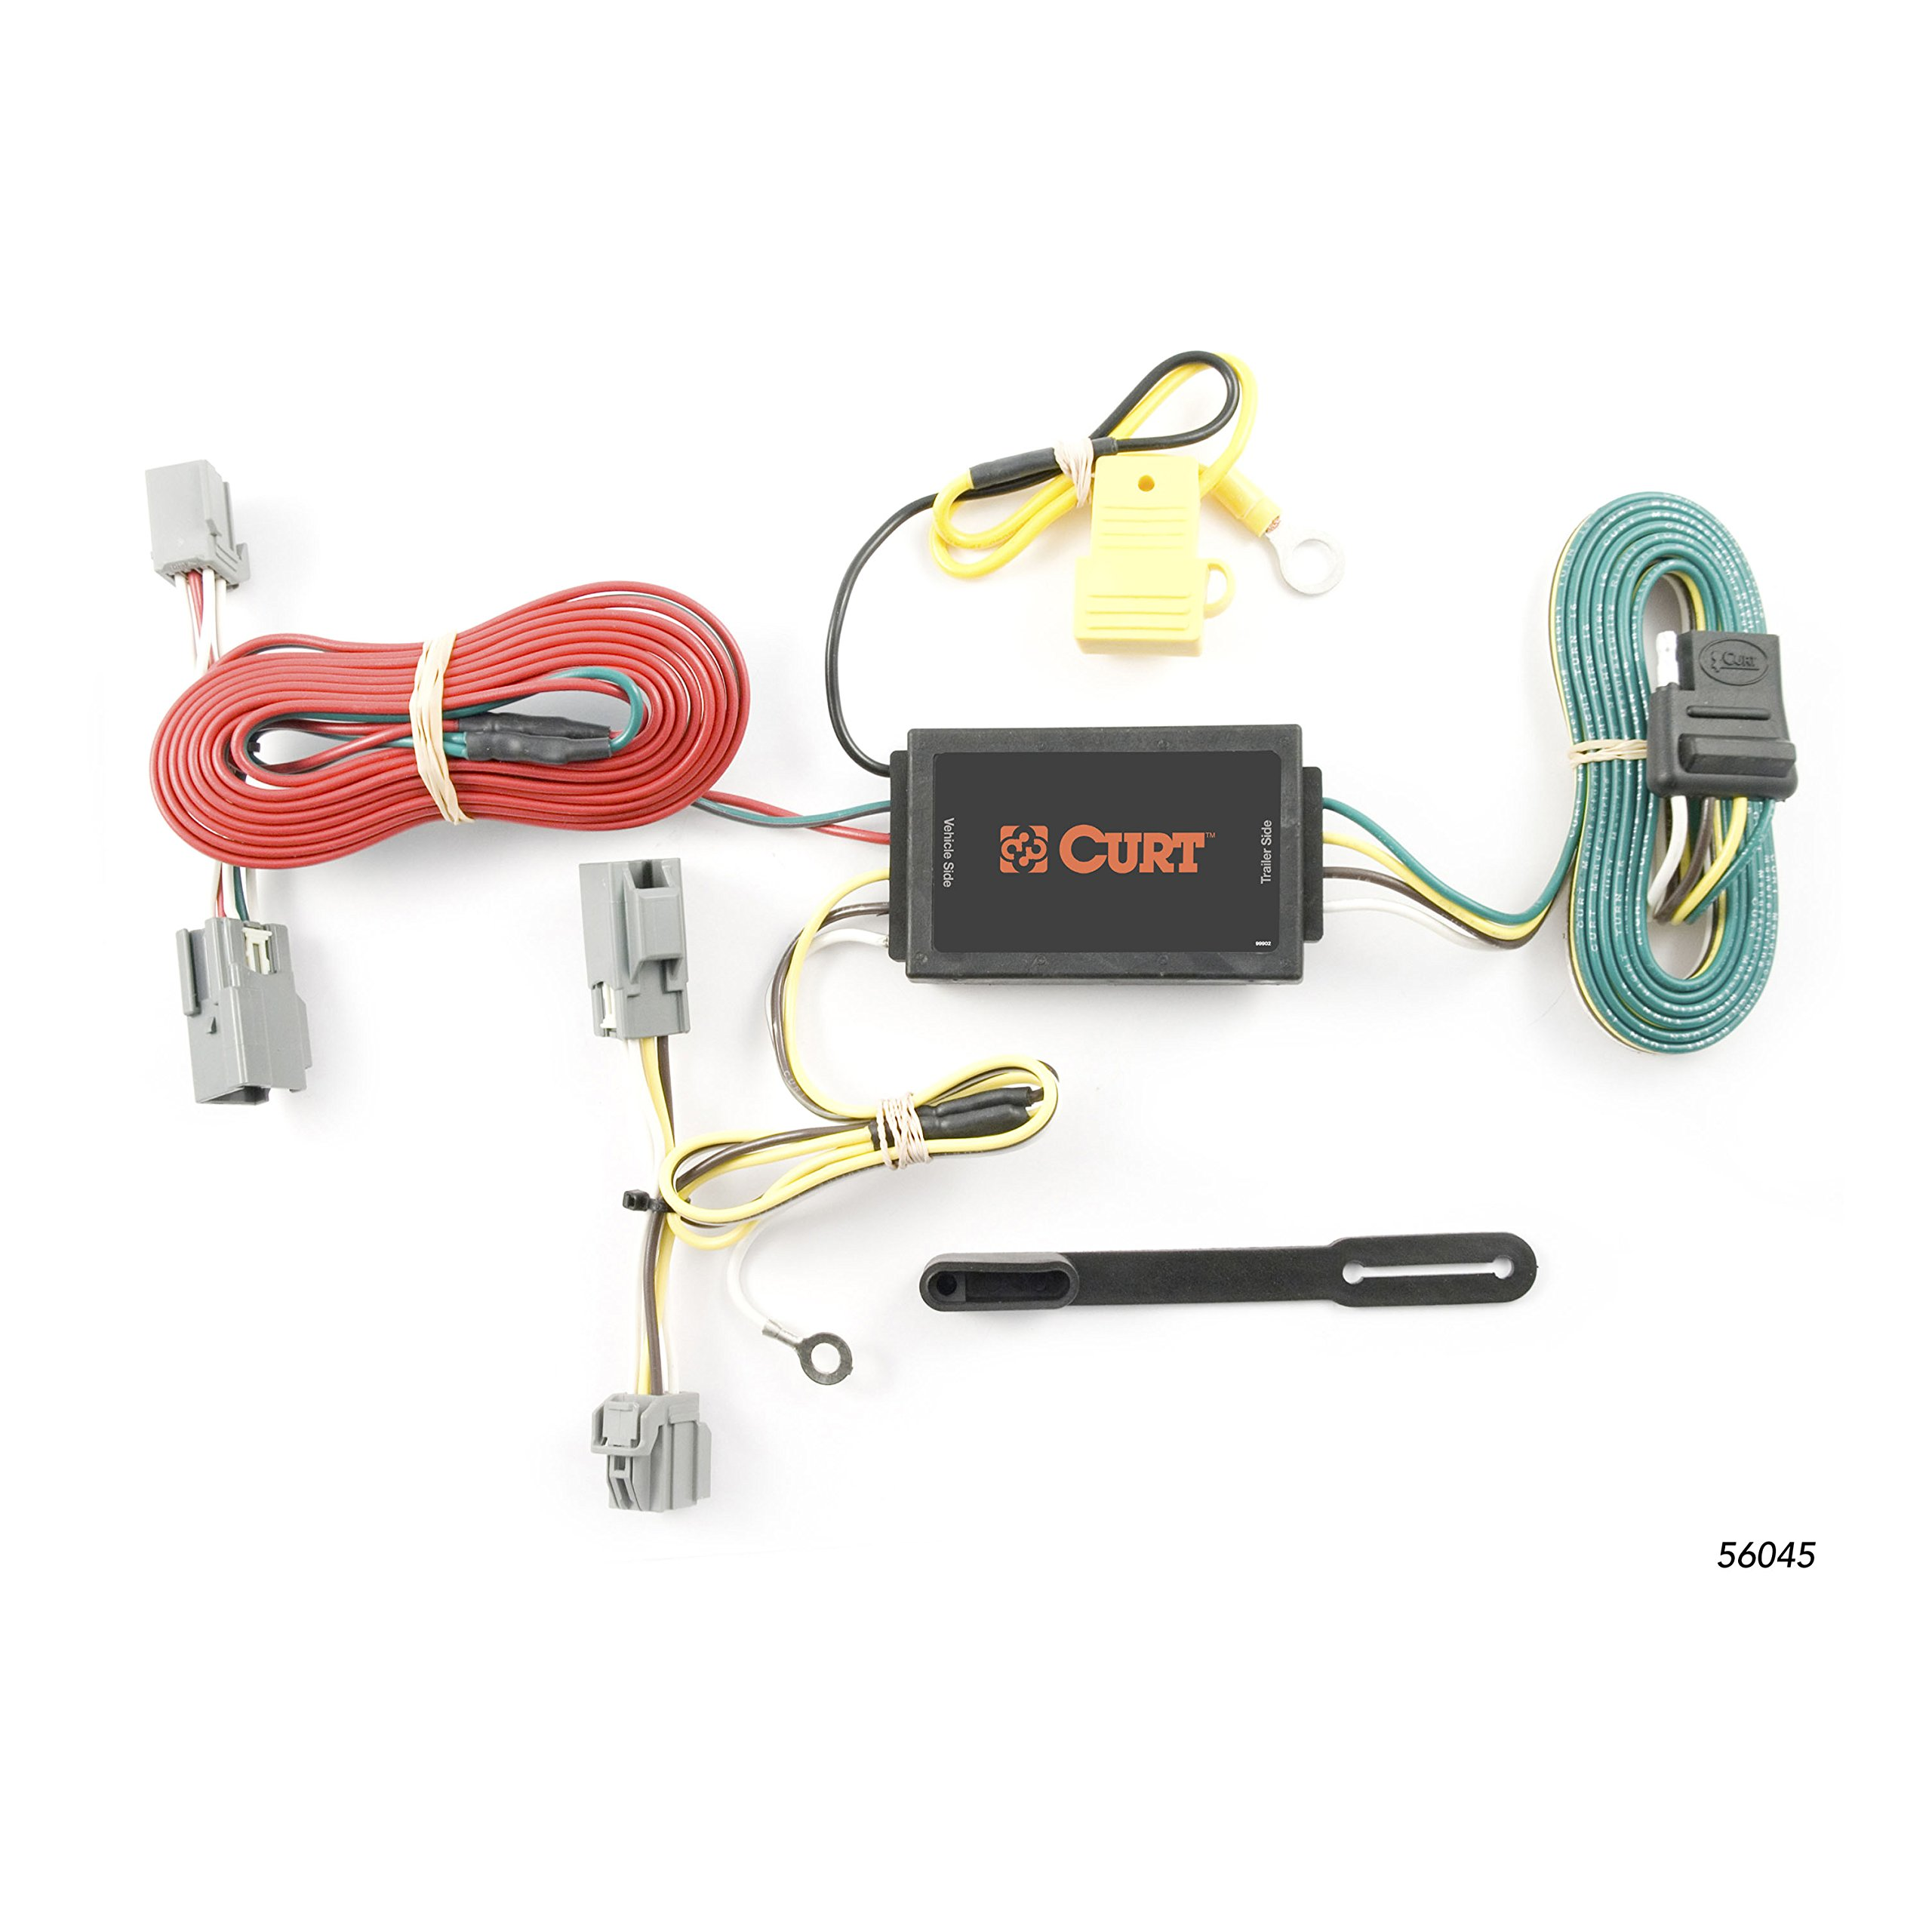 CURT 56045 Vehicle-Side Custom 4-Pin Trailer Wiring Harness for Select Volvo XC90 by Curt Manufacturing